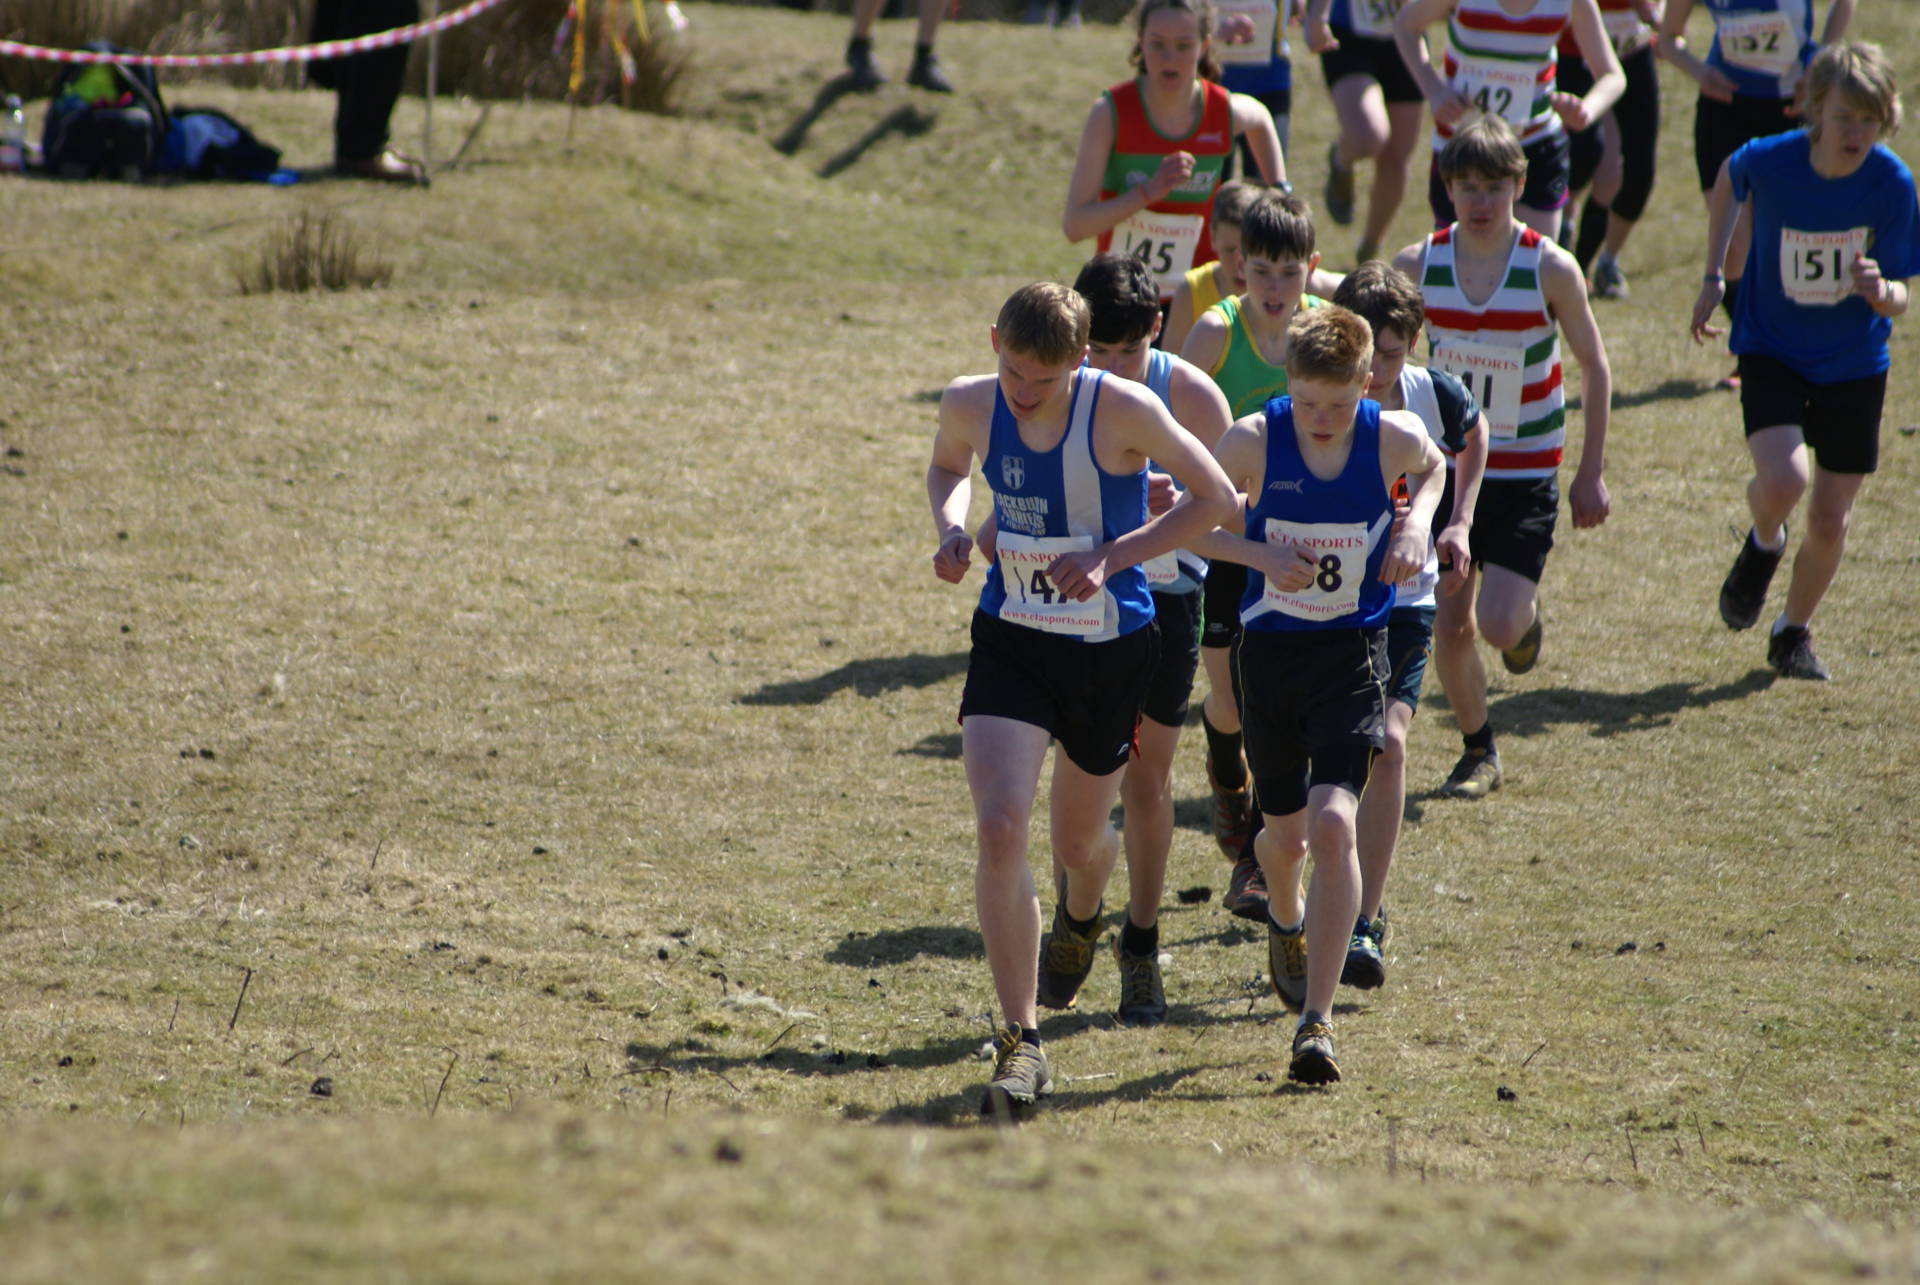 Lancashire Fell Championships Successes at Pendle